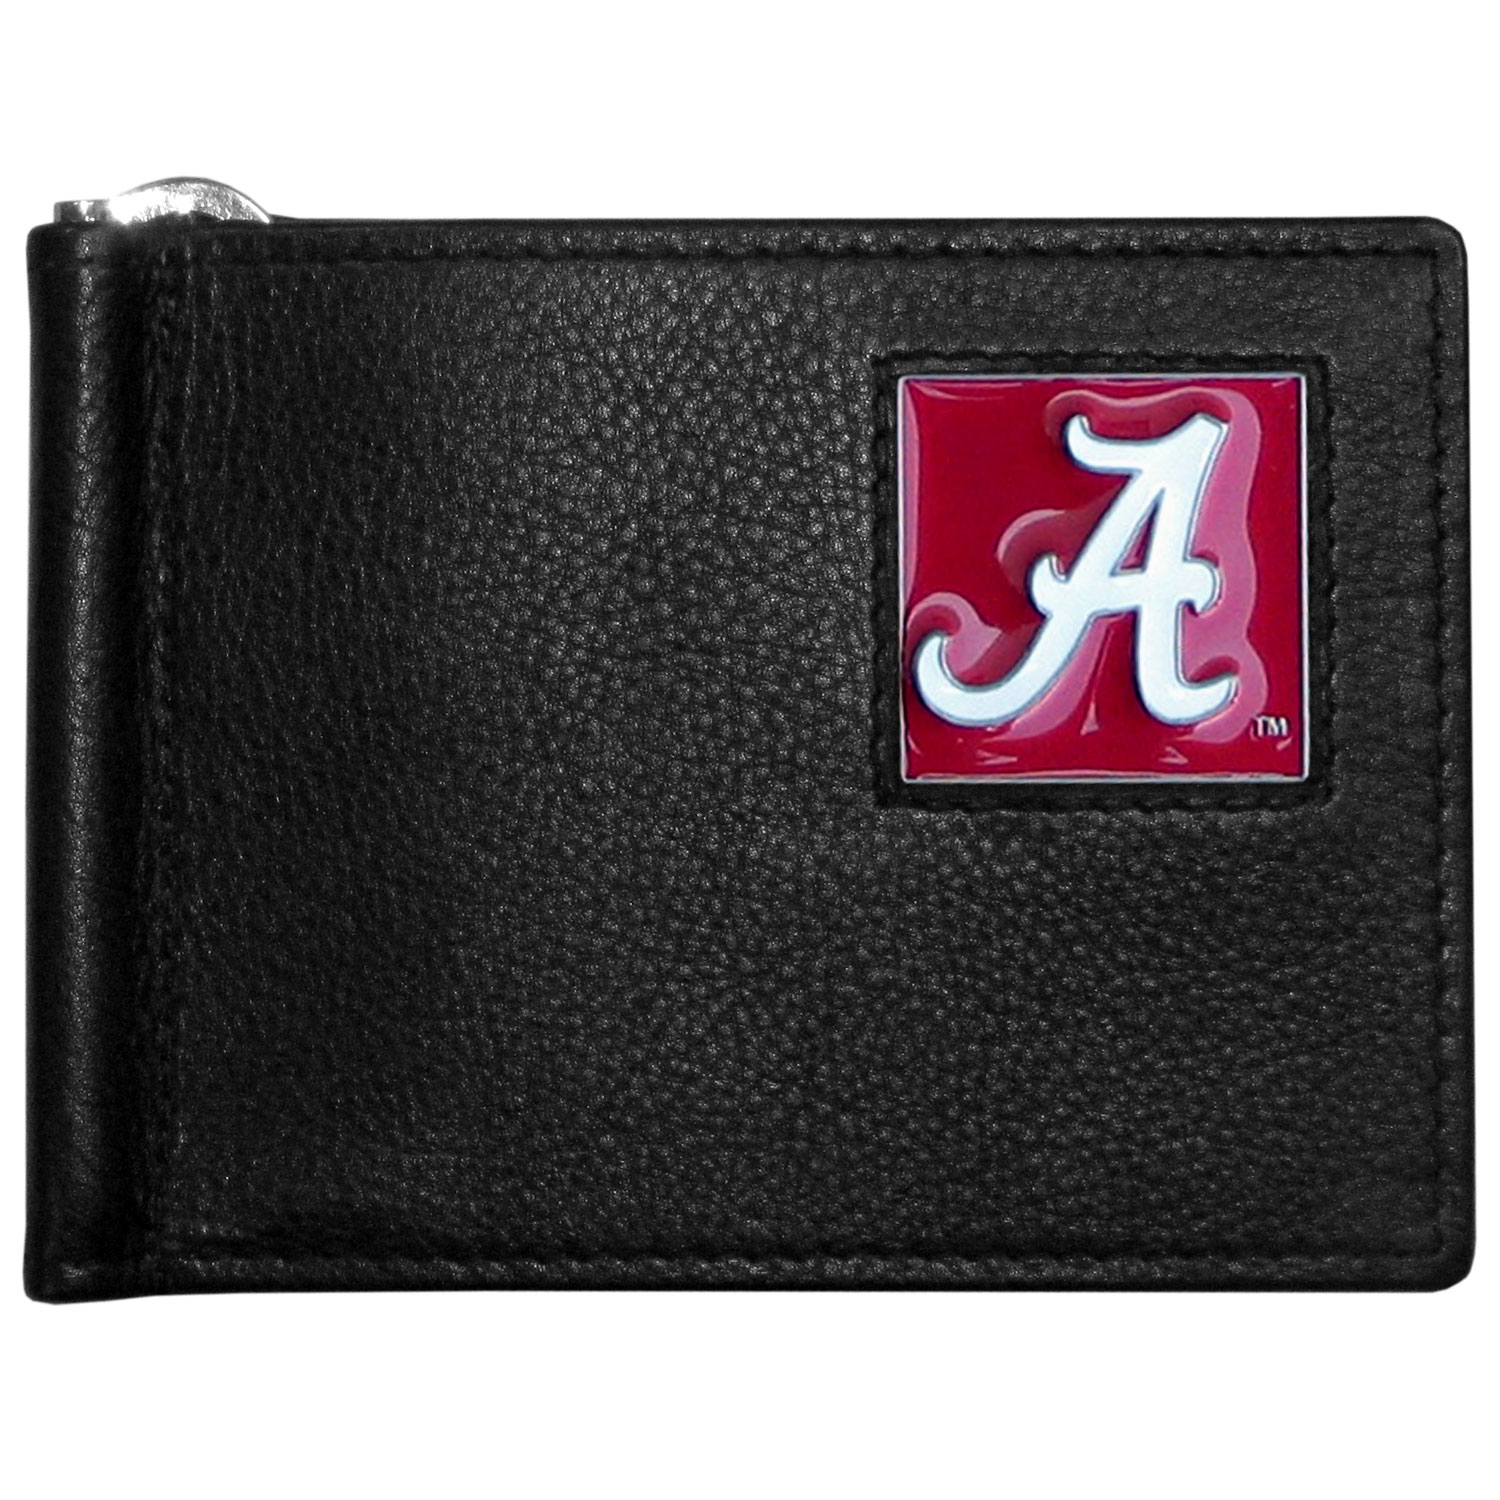 Alabama Crimson Tide Leather Bill Clip Wallet - This cool new style wallet features an inner, metal bill clip that lips up for easy access. The super slim wallet holds tons of stuff with ample pockets, credit card slots & windowed ID slot. The wallet is made of genuine fine grain leather and it finished with a metal Alabama Crimson Tide emblem. The wallet is shipped in gift box packaging.